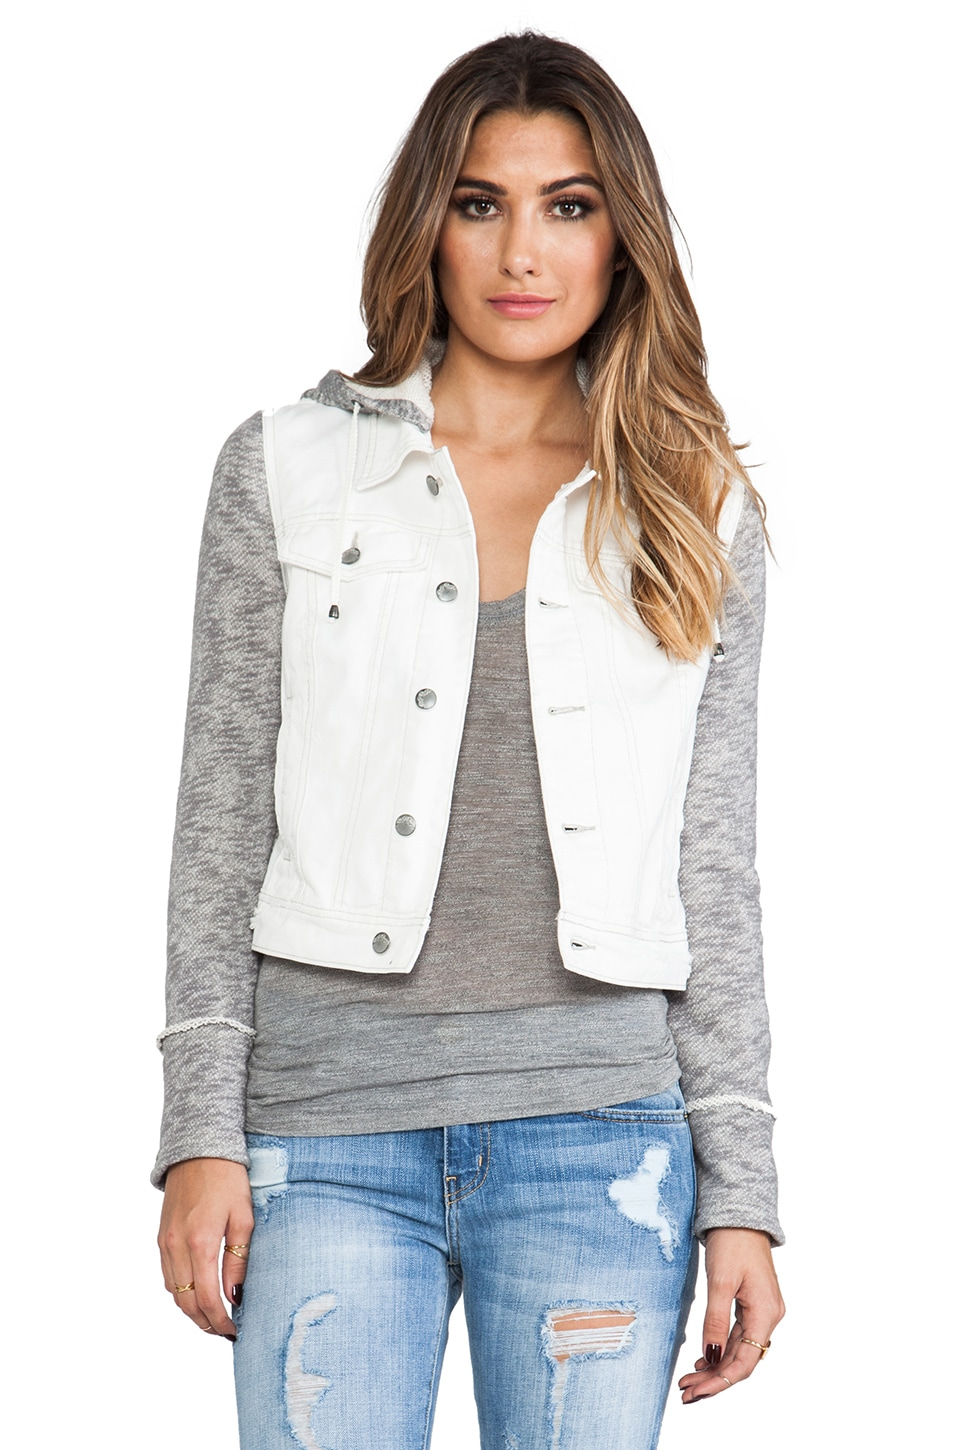 Free People Denim/Knit Hoodie Jacket in Ivory Combo